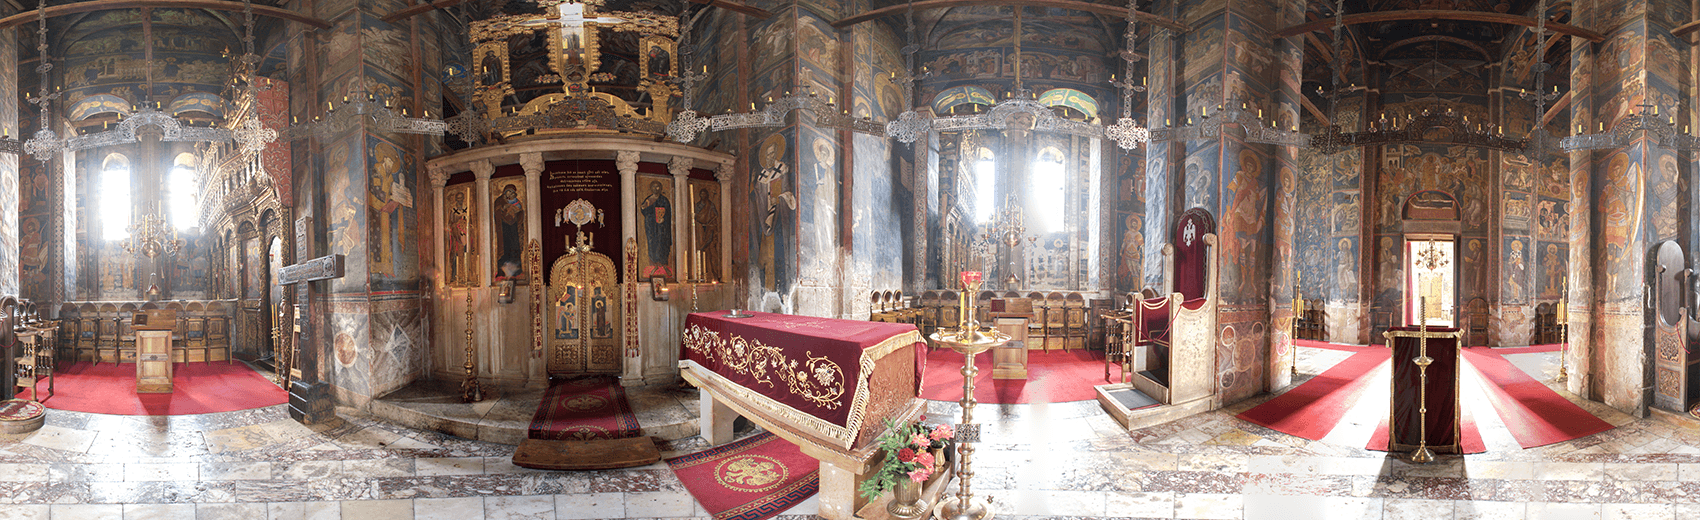 decani-nave-1.png